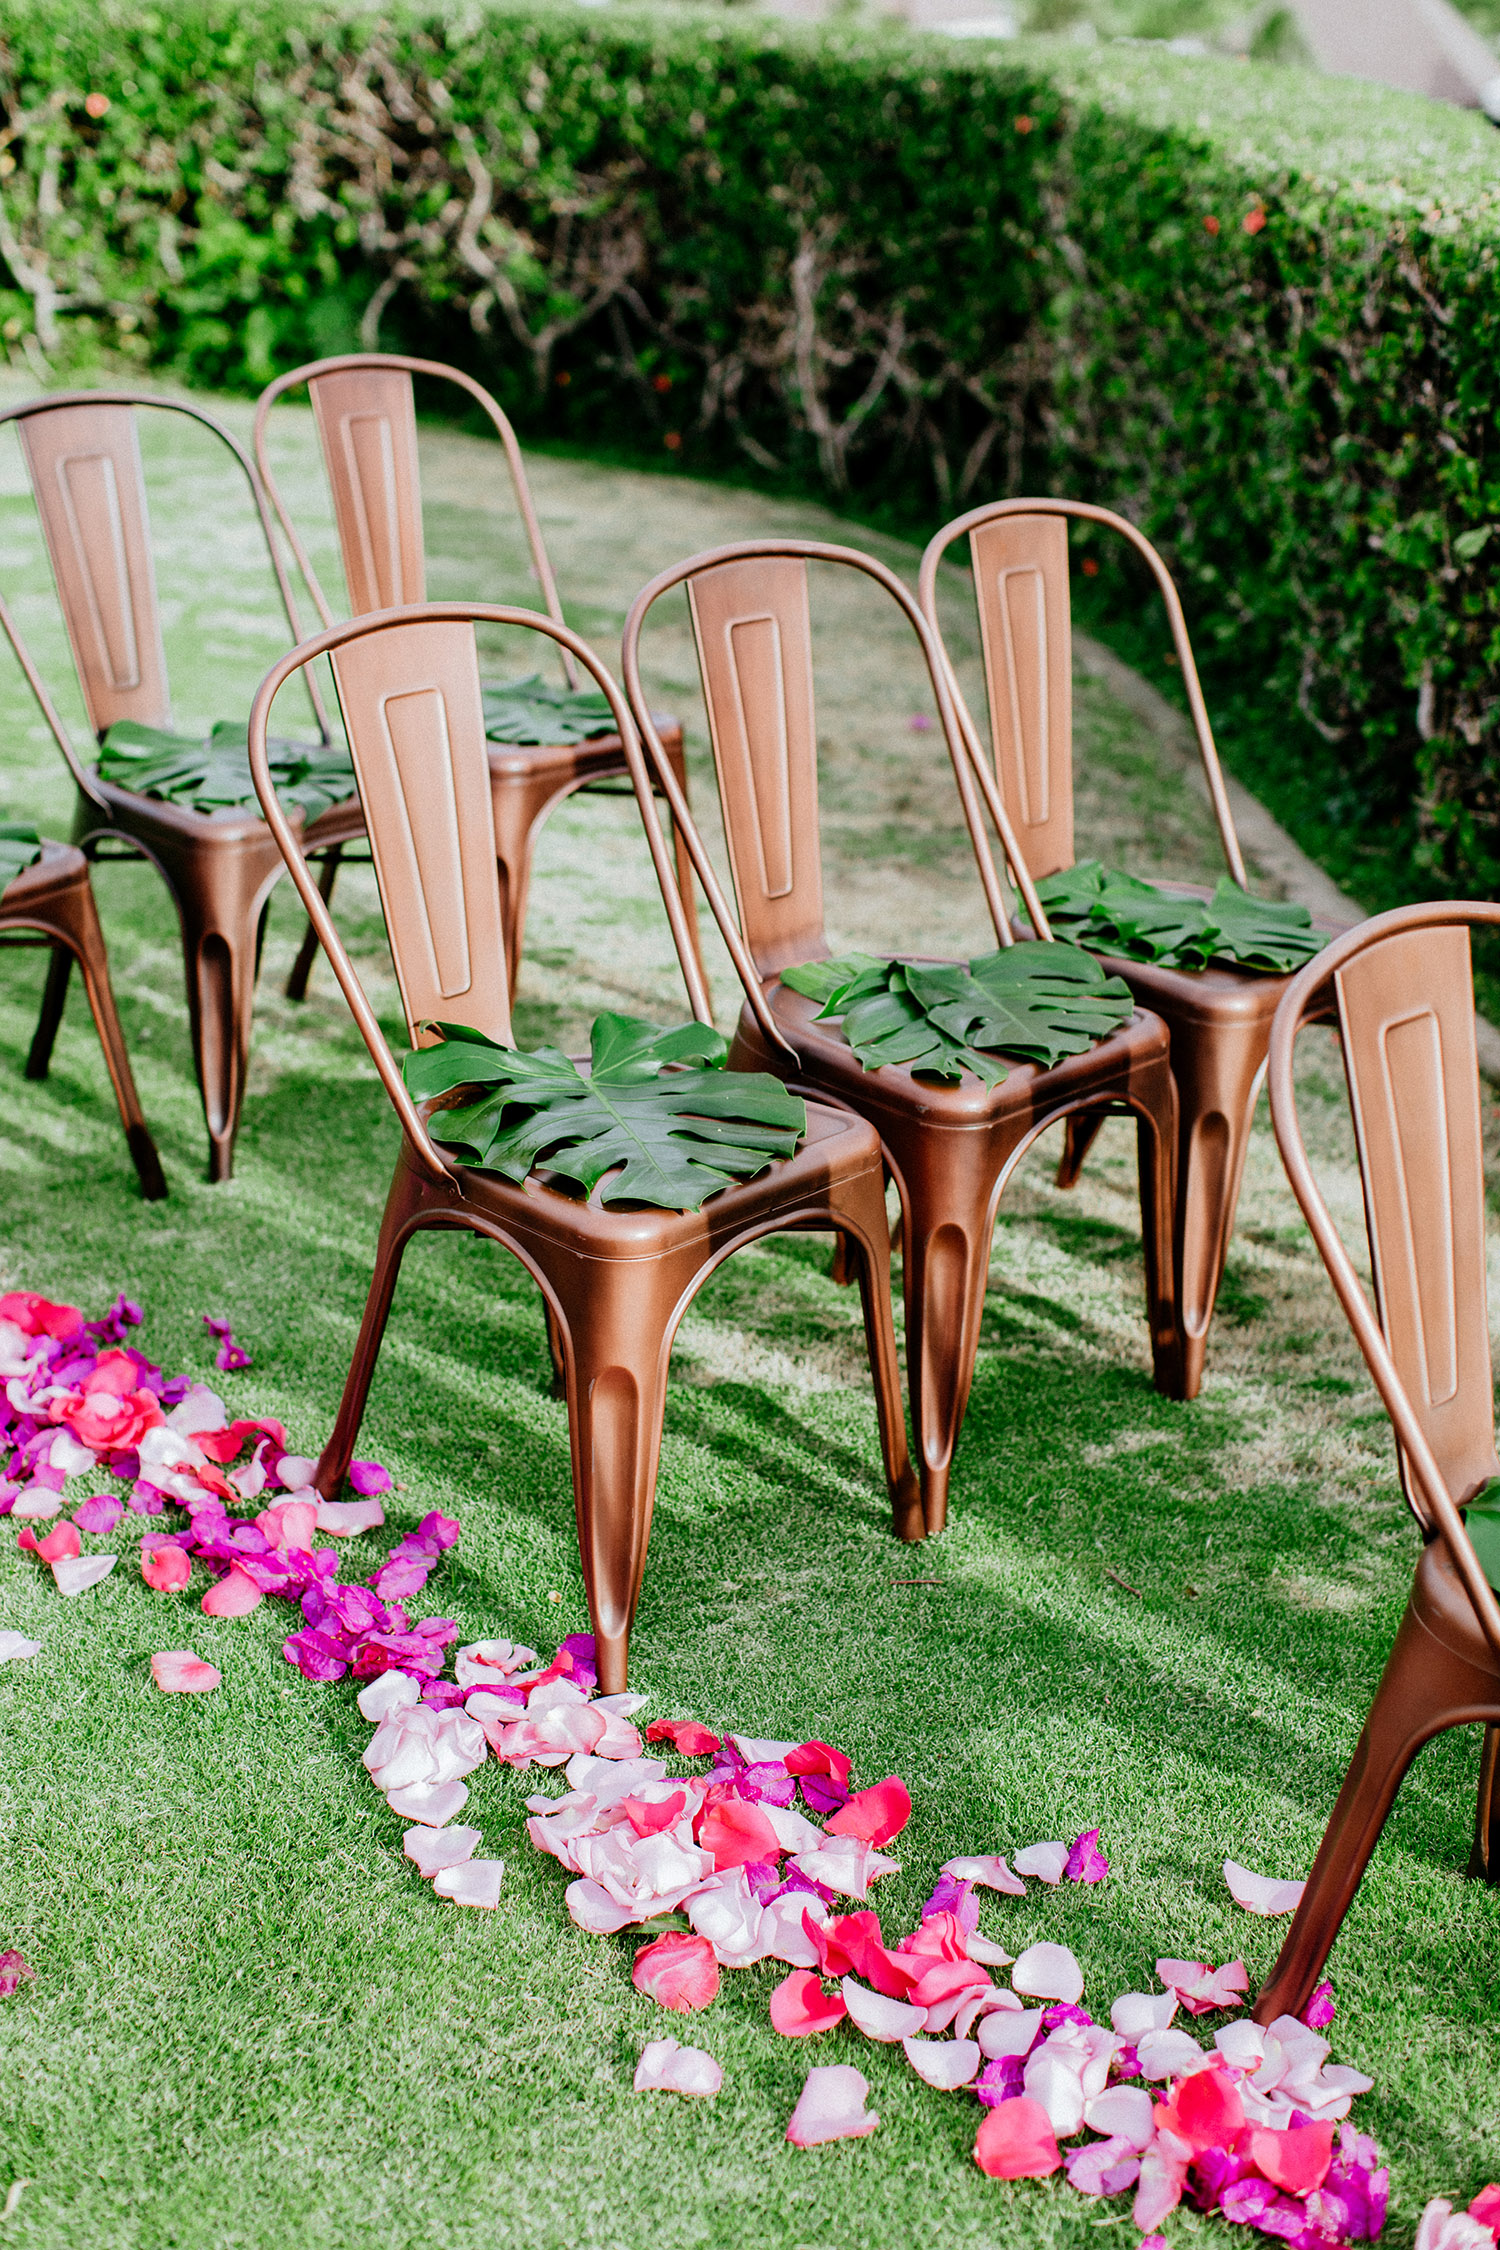 Sheraton Maui Resort & Spa - Ali'i Lawn Ceremony